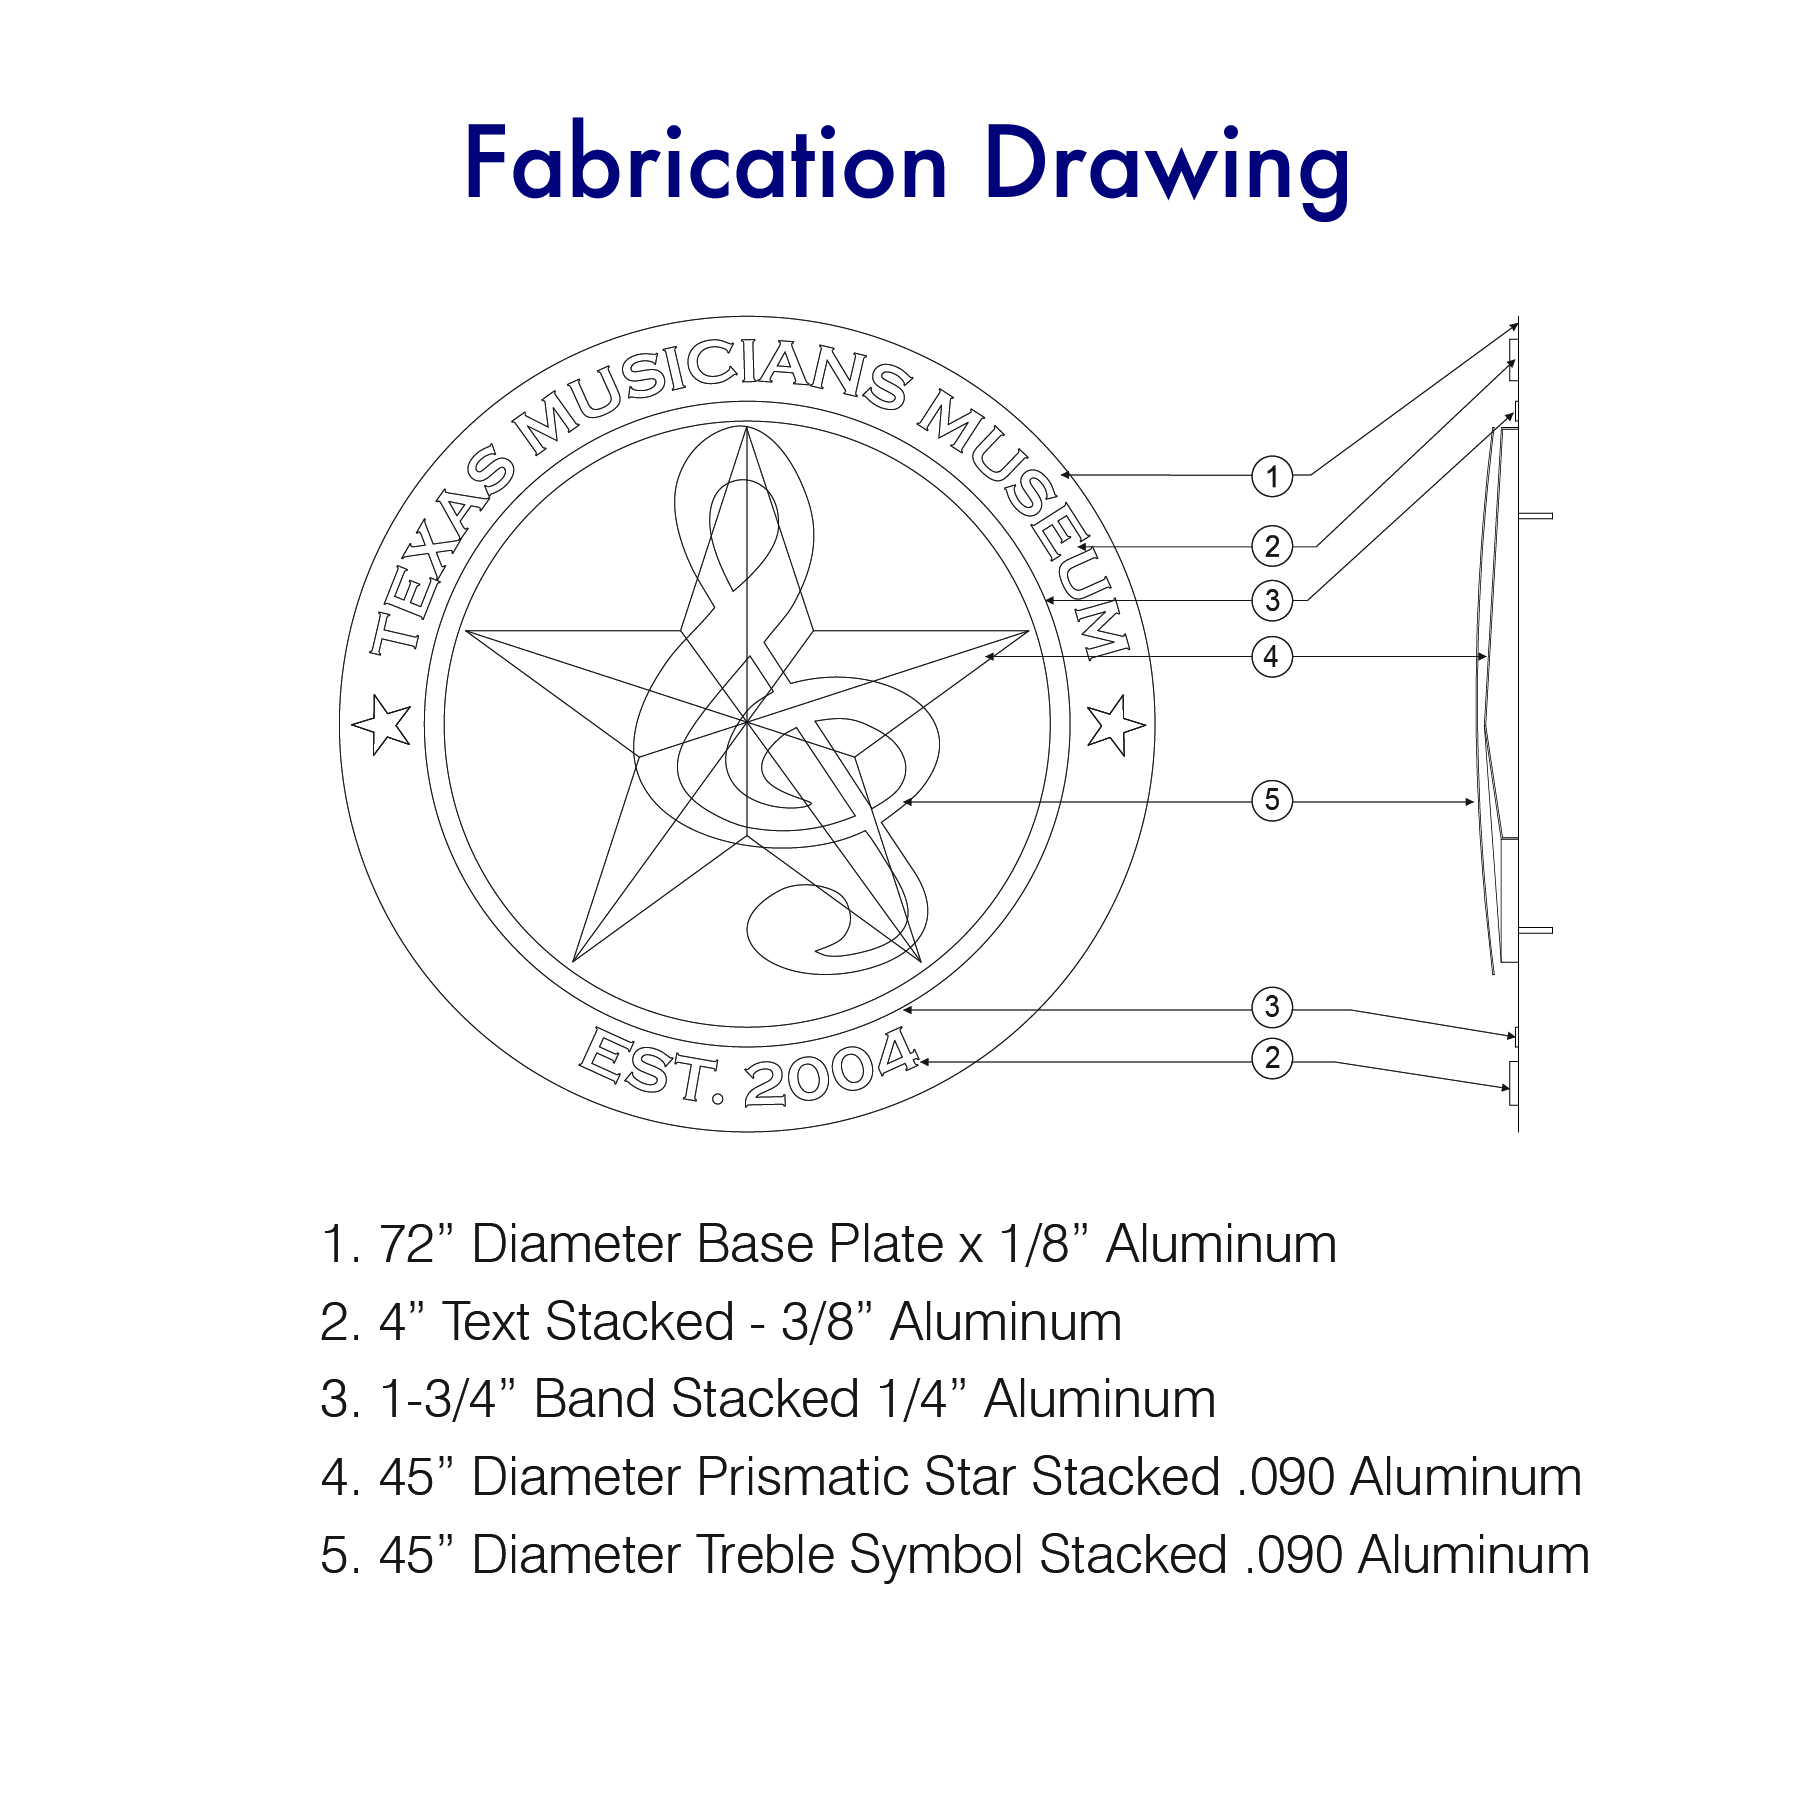 Fabrication Drawing-01.jpg